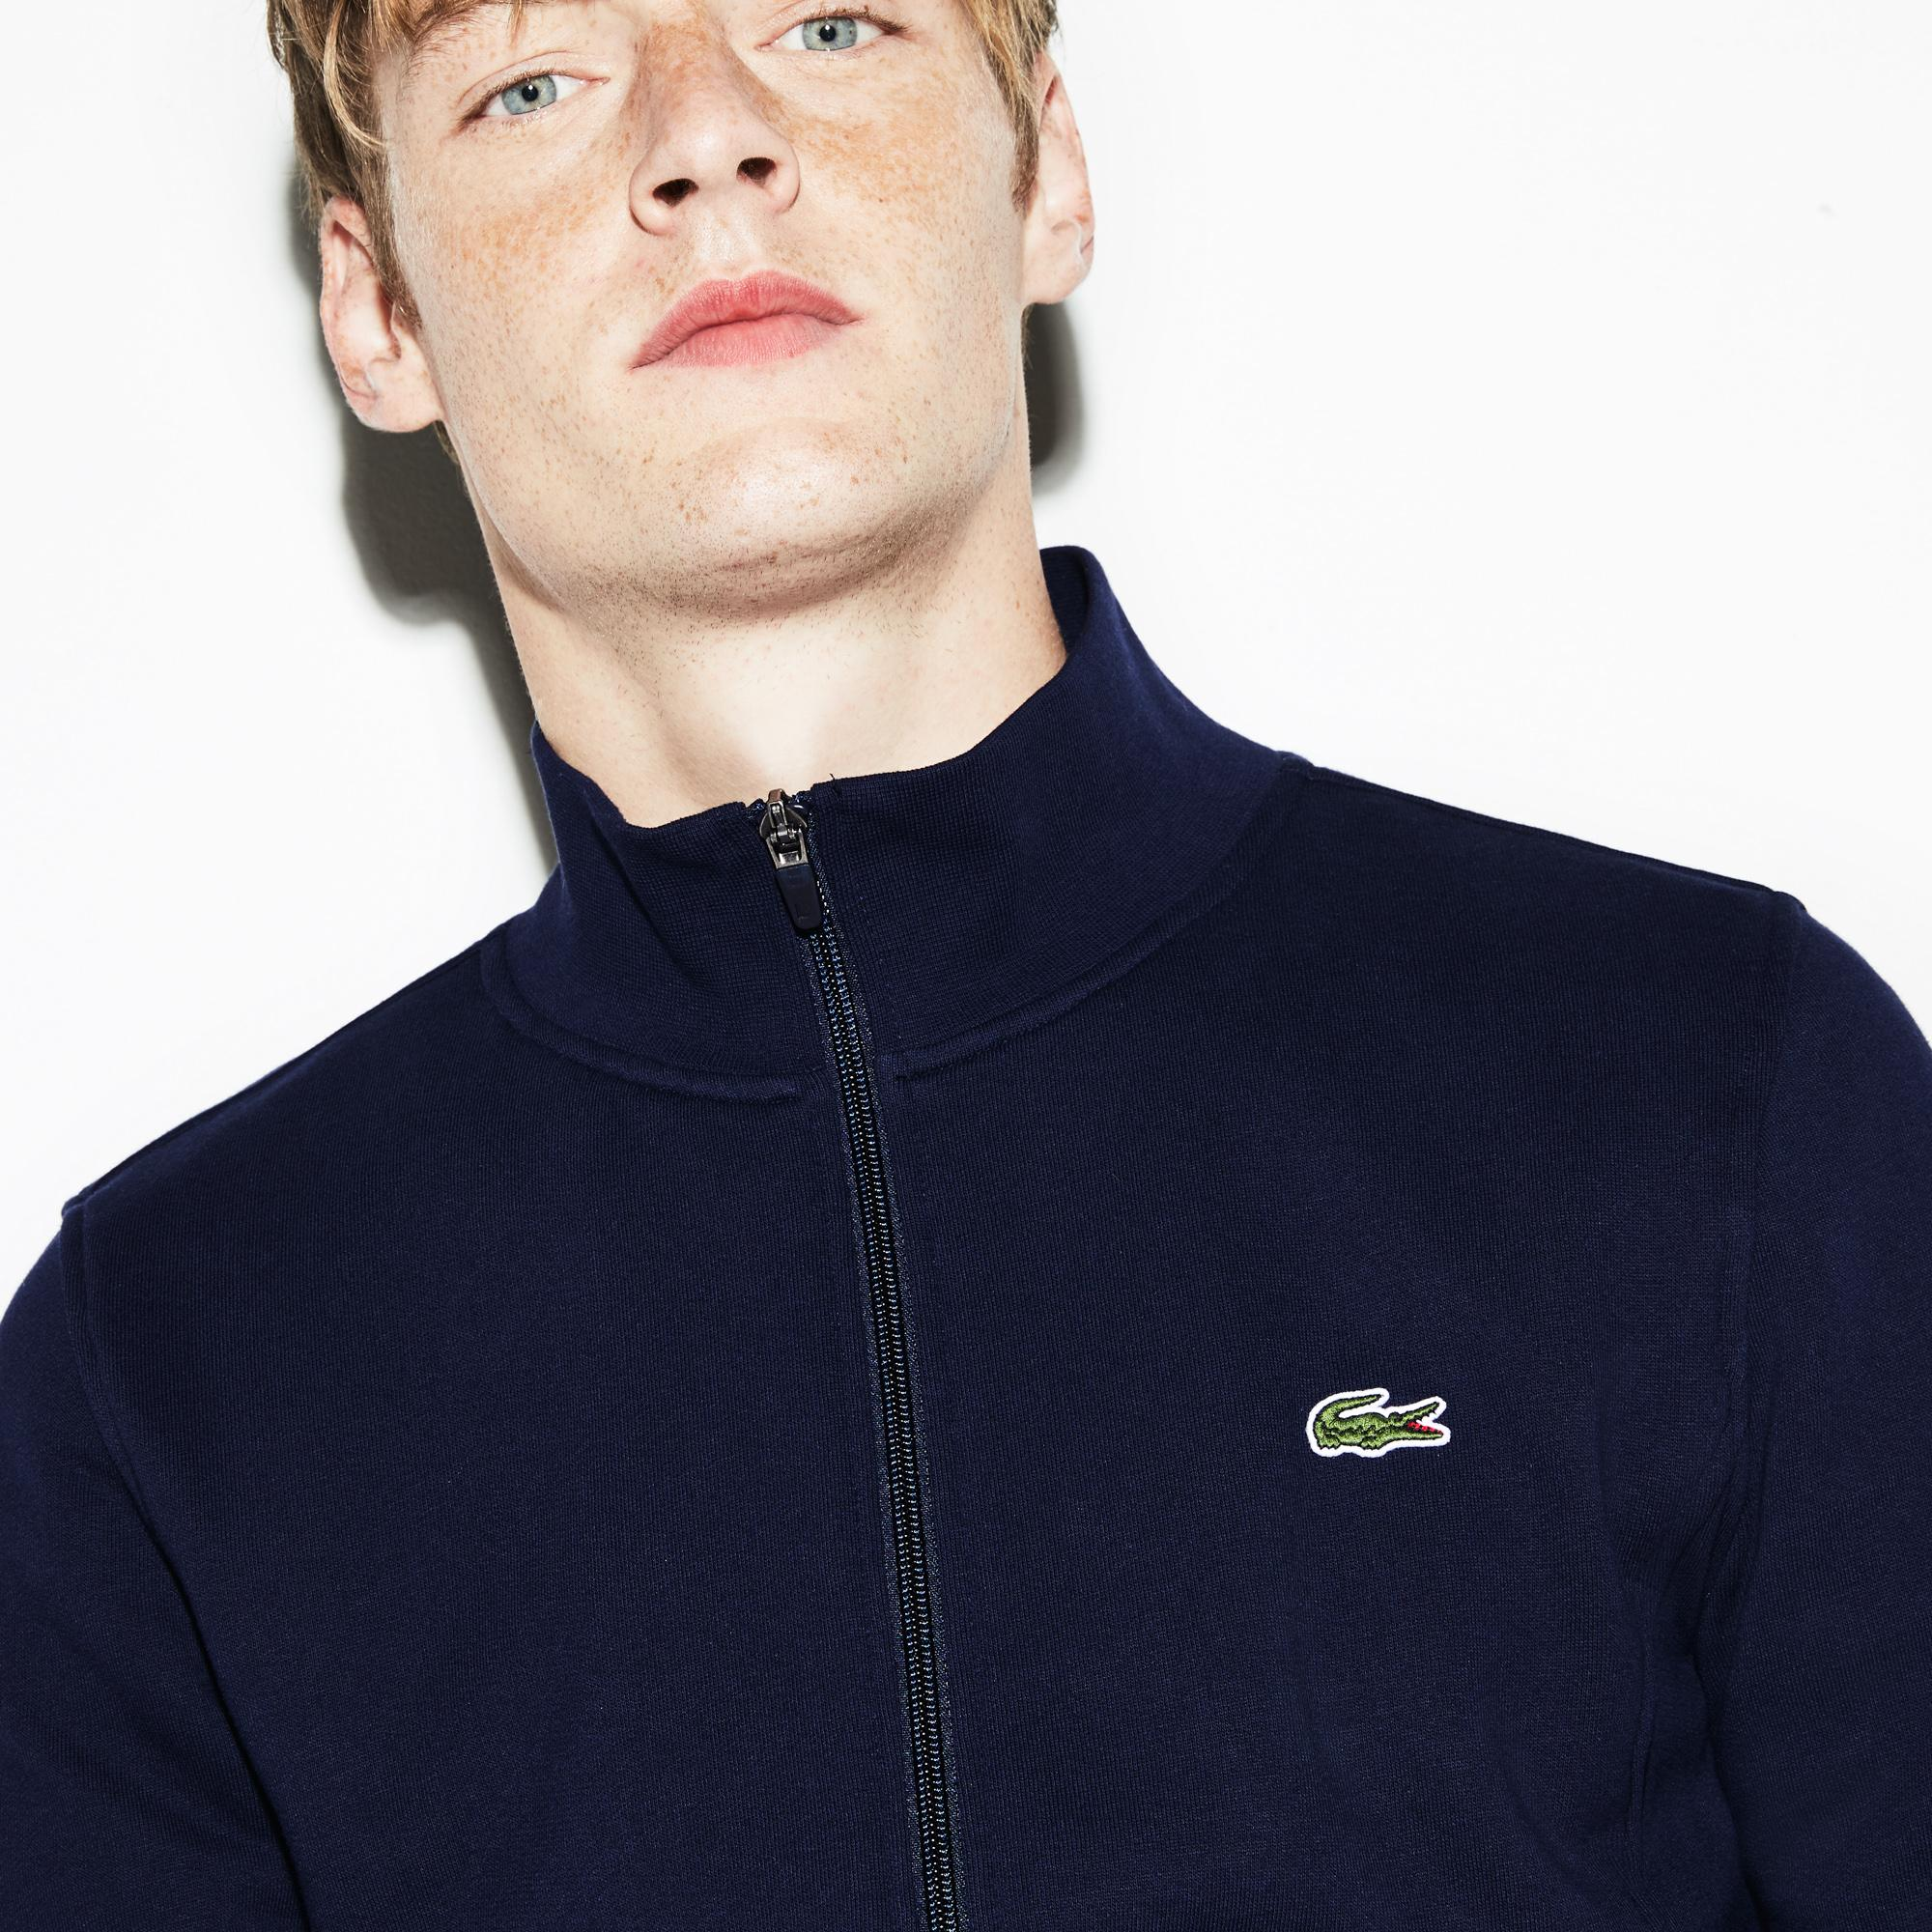 Lacoste Men's Sport Zip-Up Fleece Sweatshirt